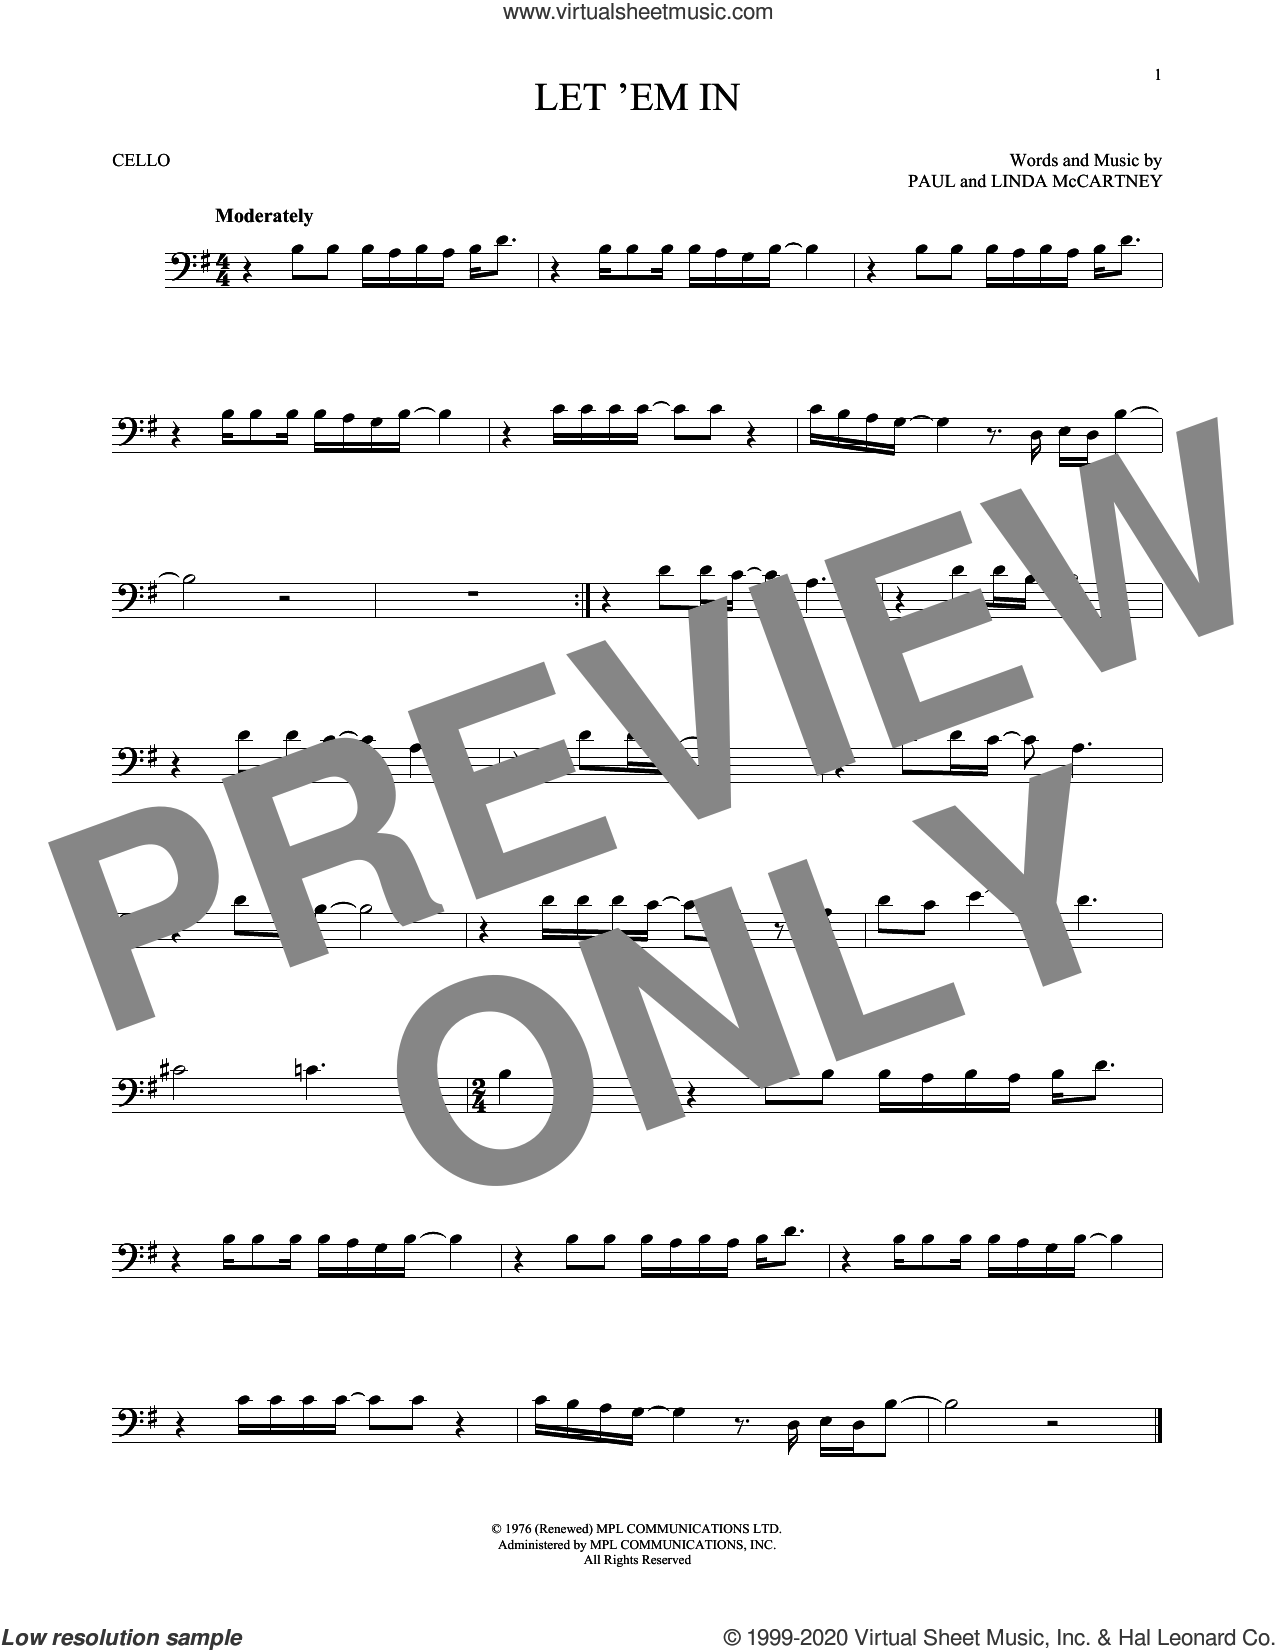 Let 'Em In sheet music for cello solo by Wings, Linda McCartney and Paul McCartney, intermediate skill level